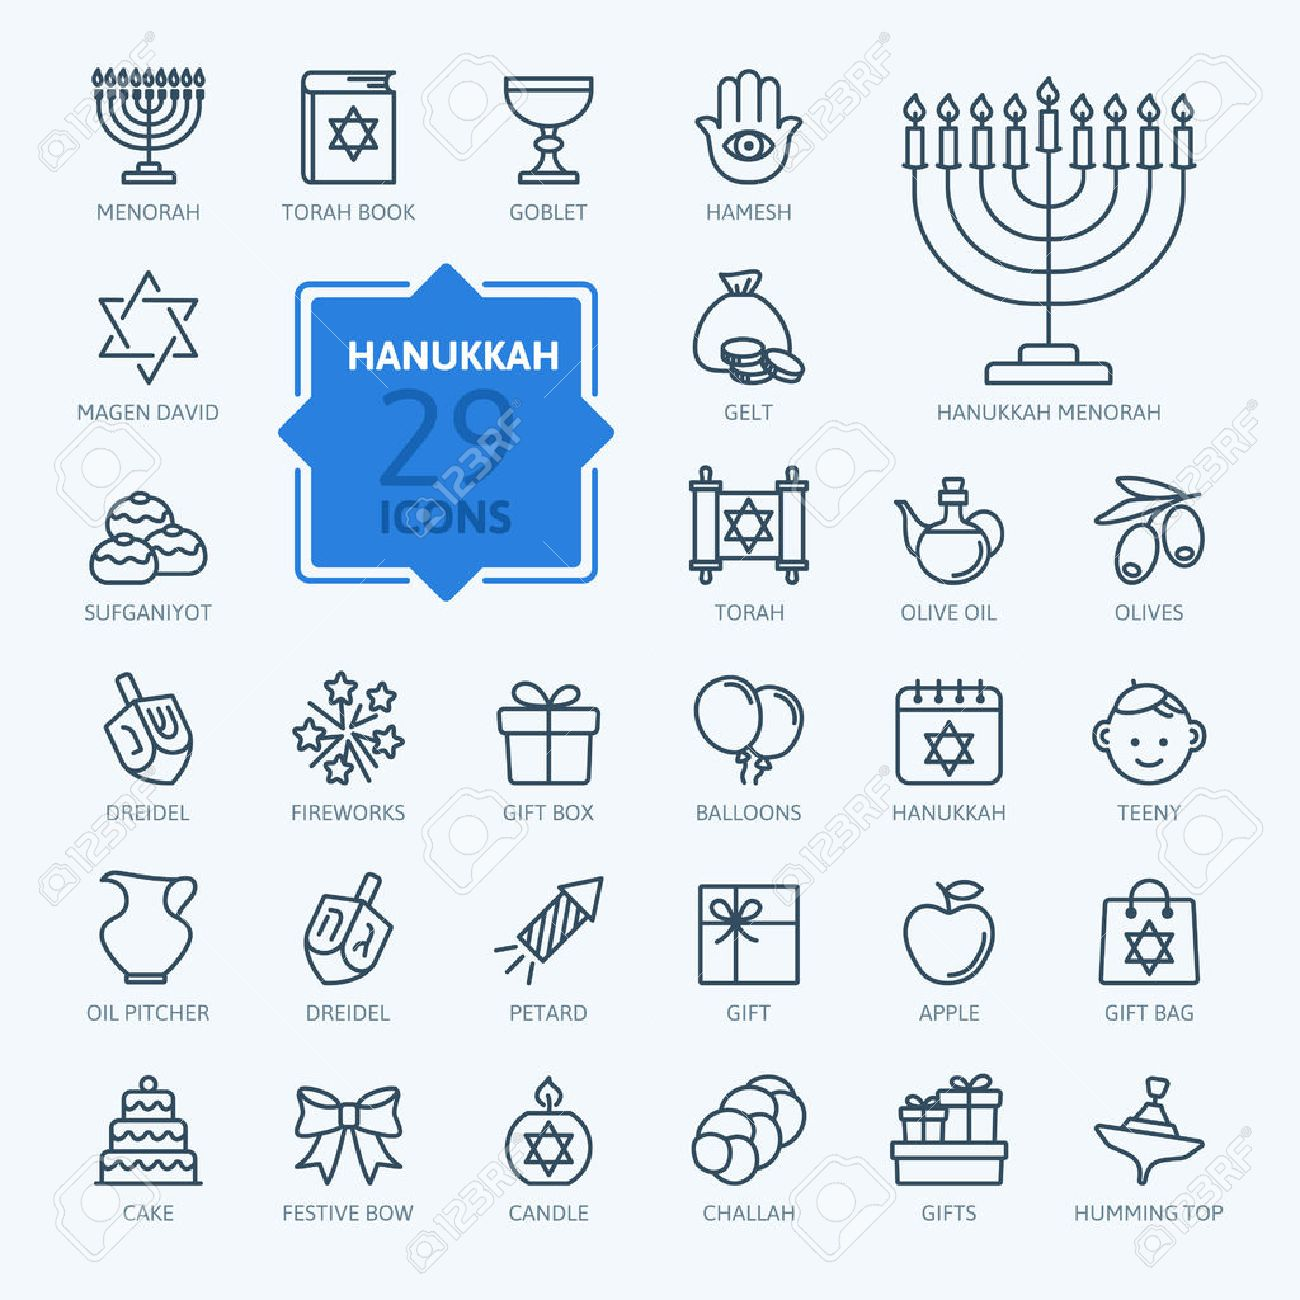 Outline Icon Collection Symbols Of Hanukkah Royalty Free Cliparts